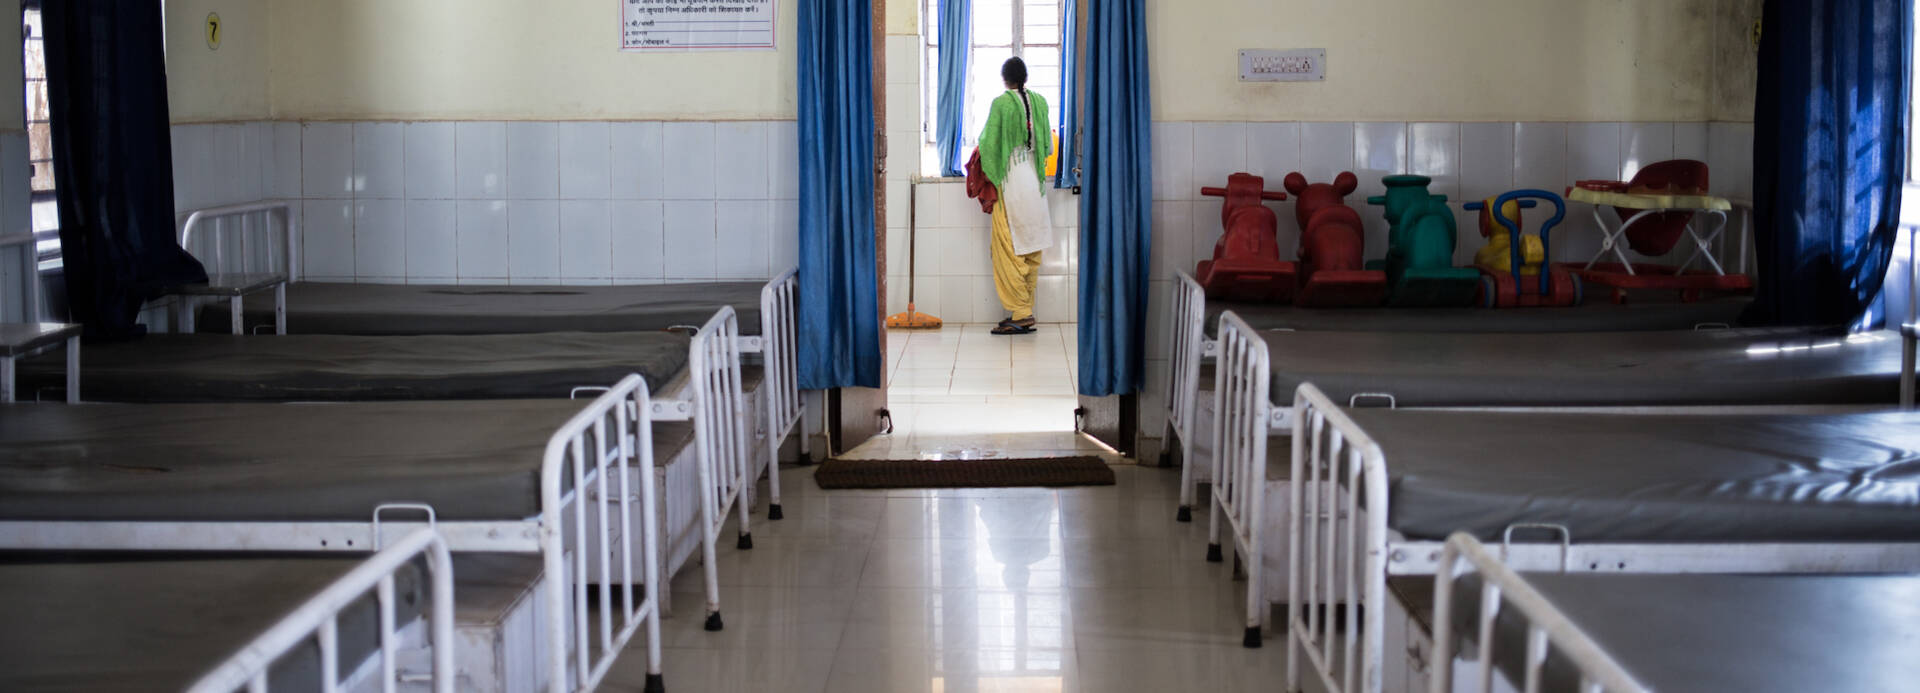 Krankenstation in Indien